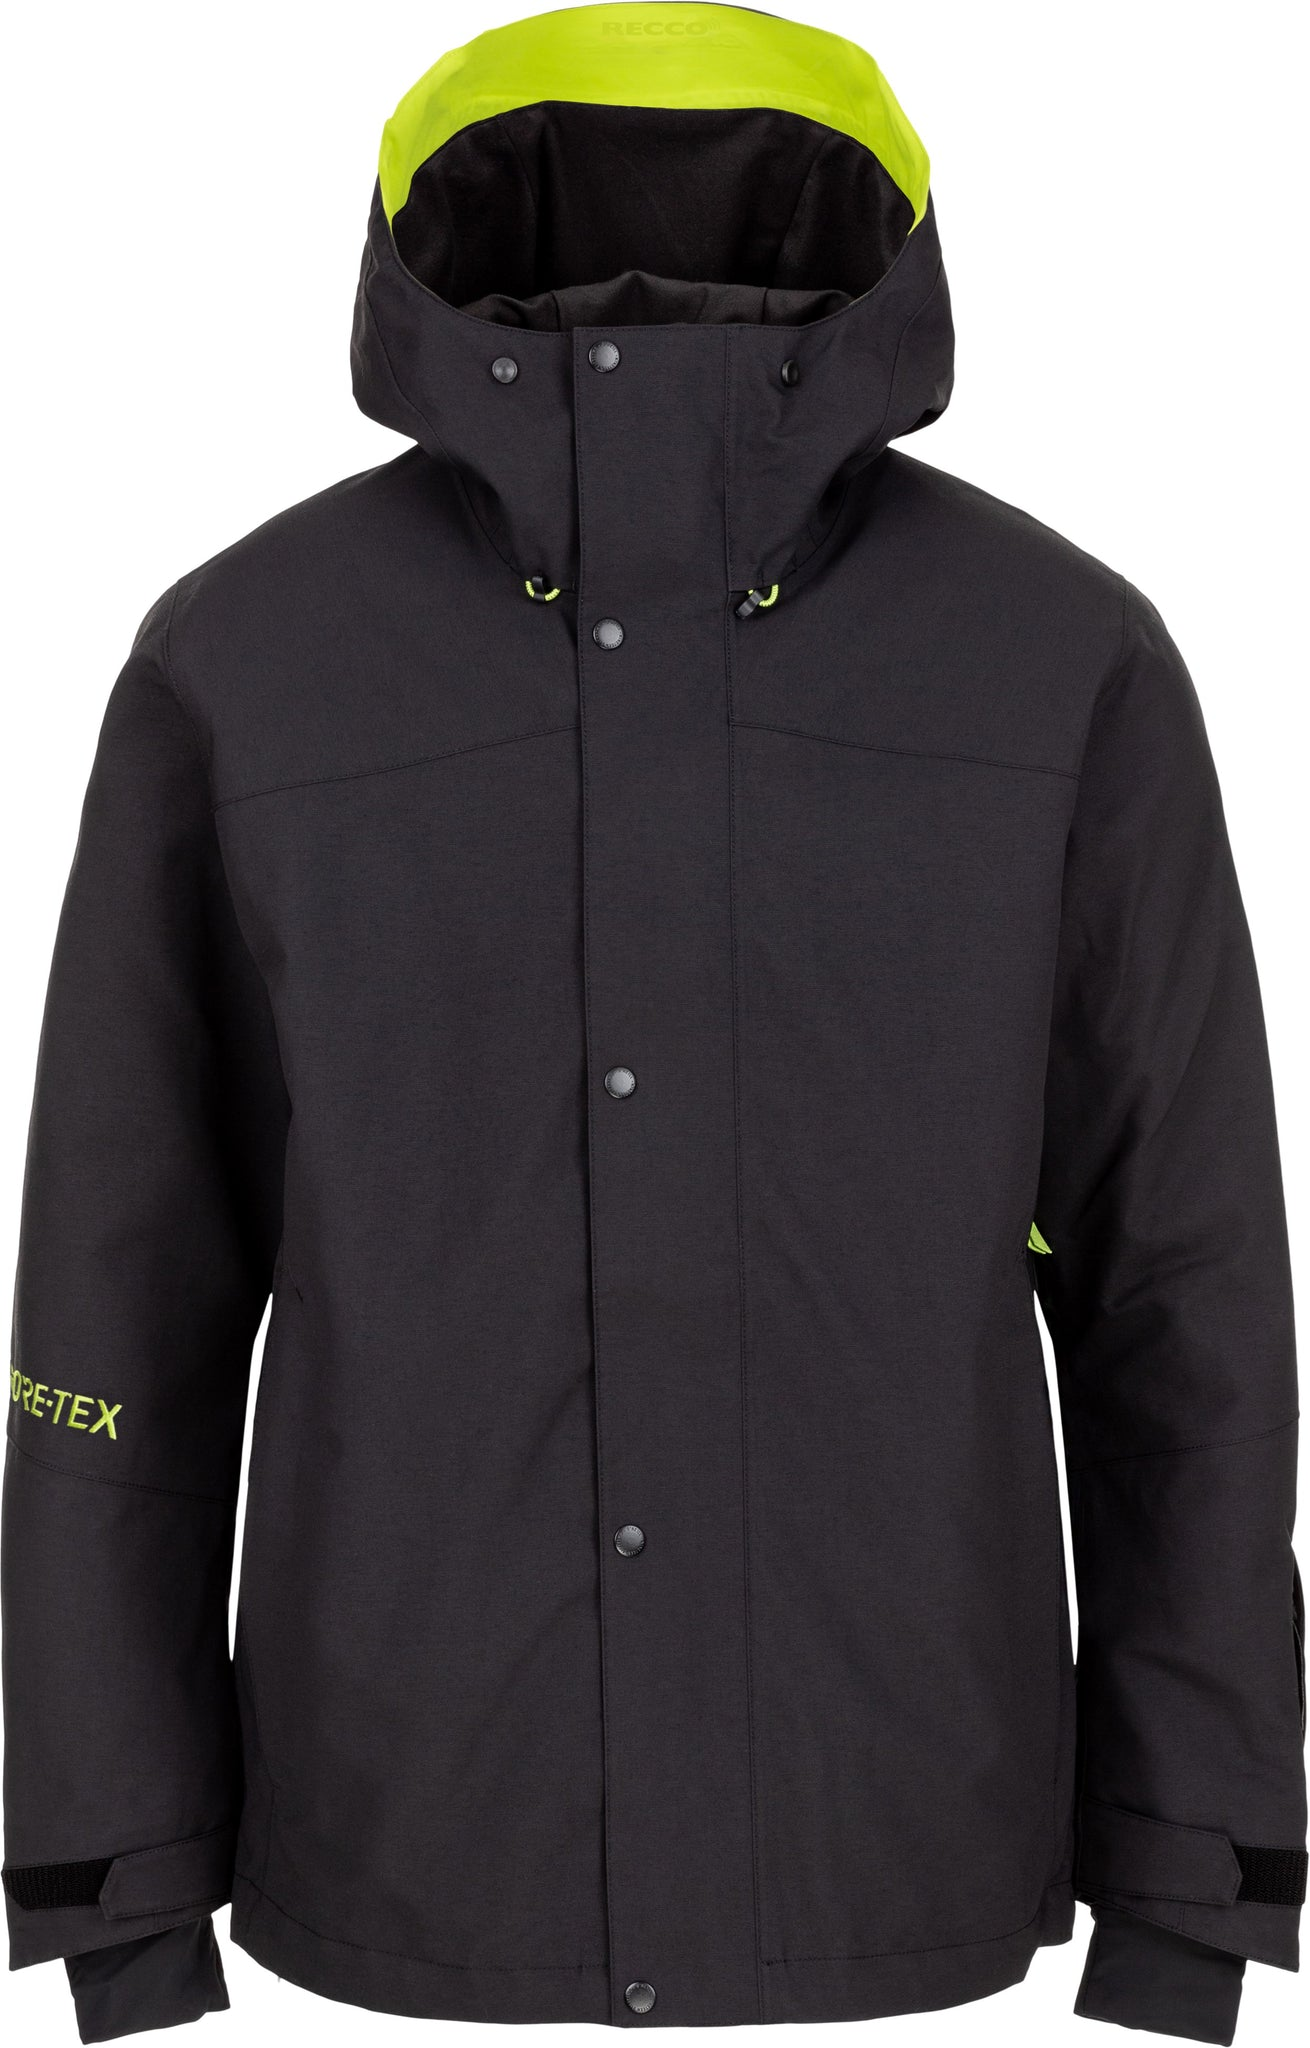 GTX SHRED FREAK JACKET